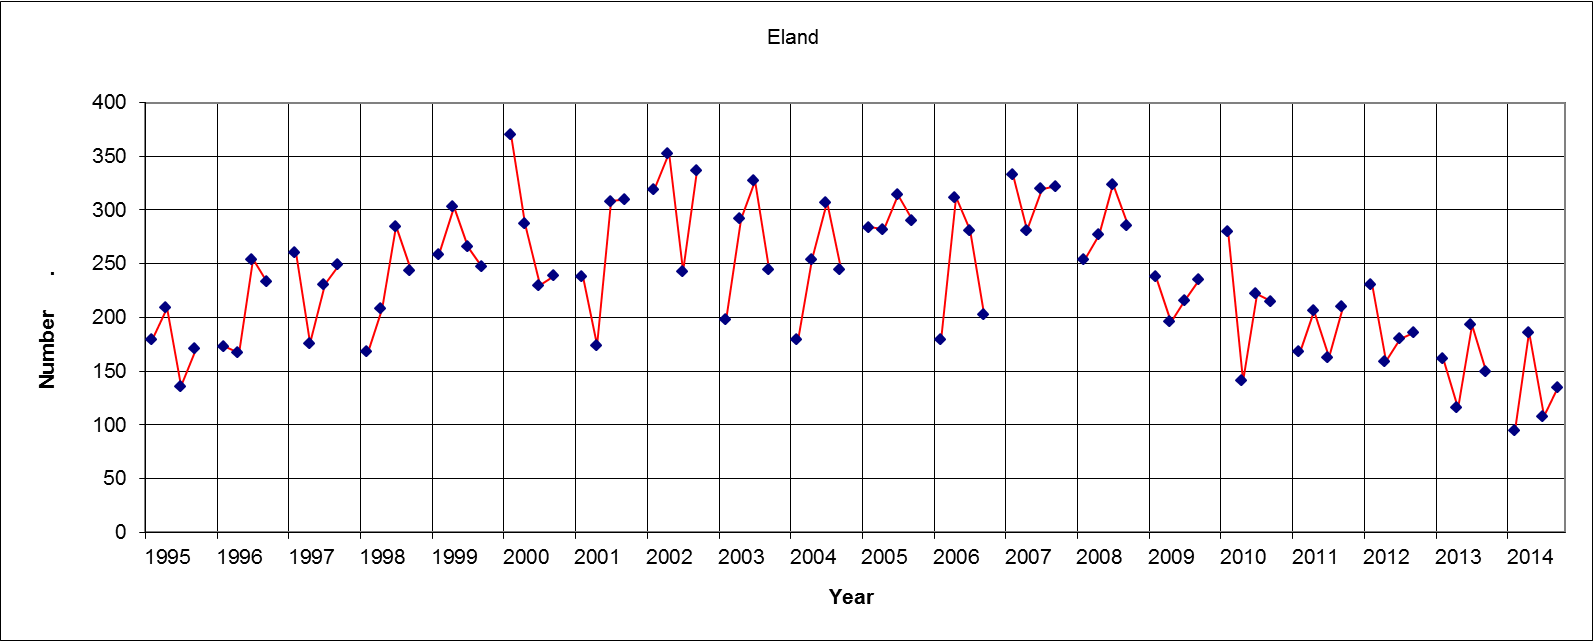 Eland Results (Four figures each year = Sat am, Sat pm, Sun am, Sun pm